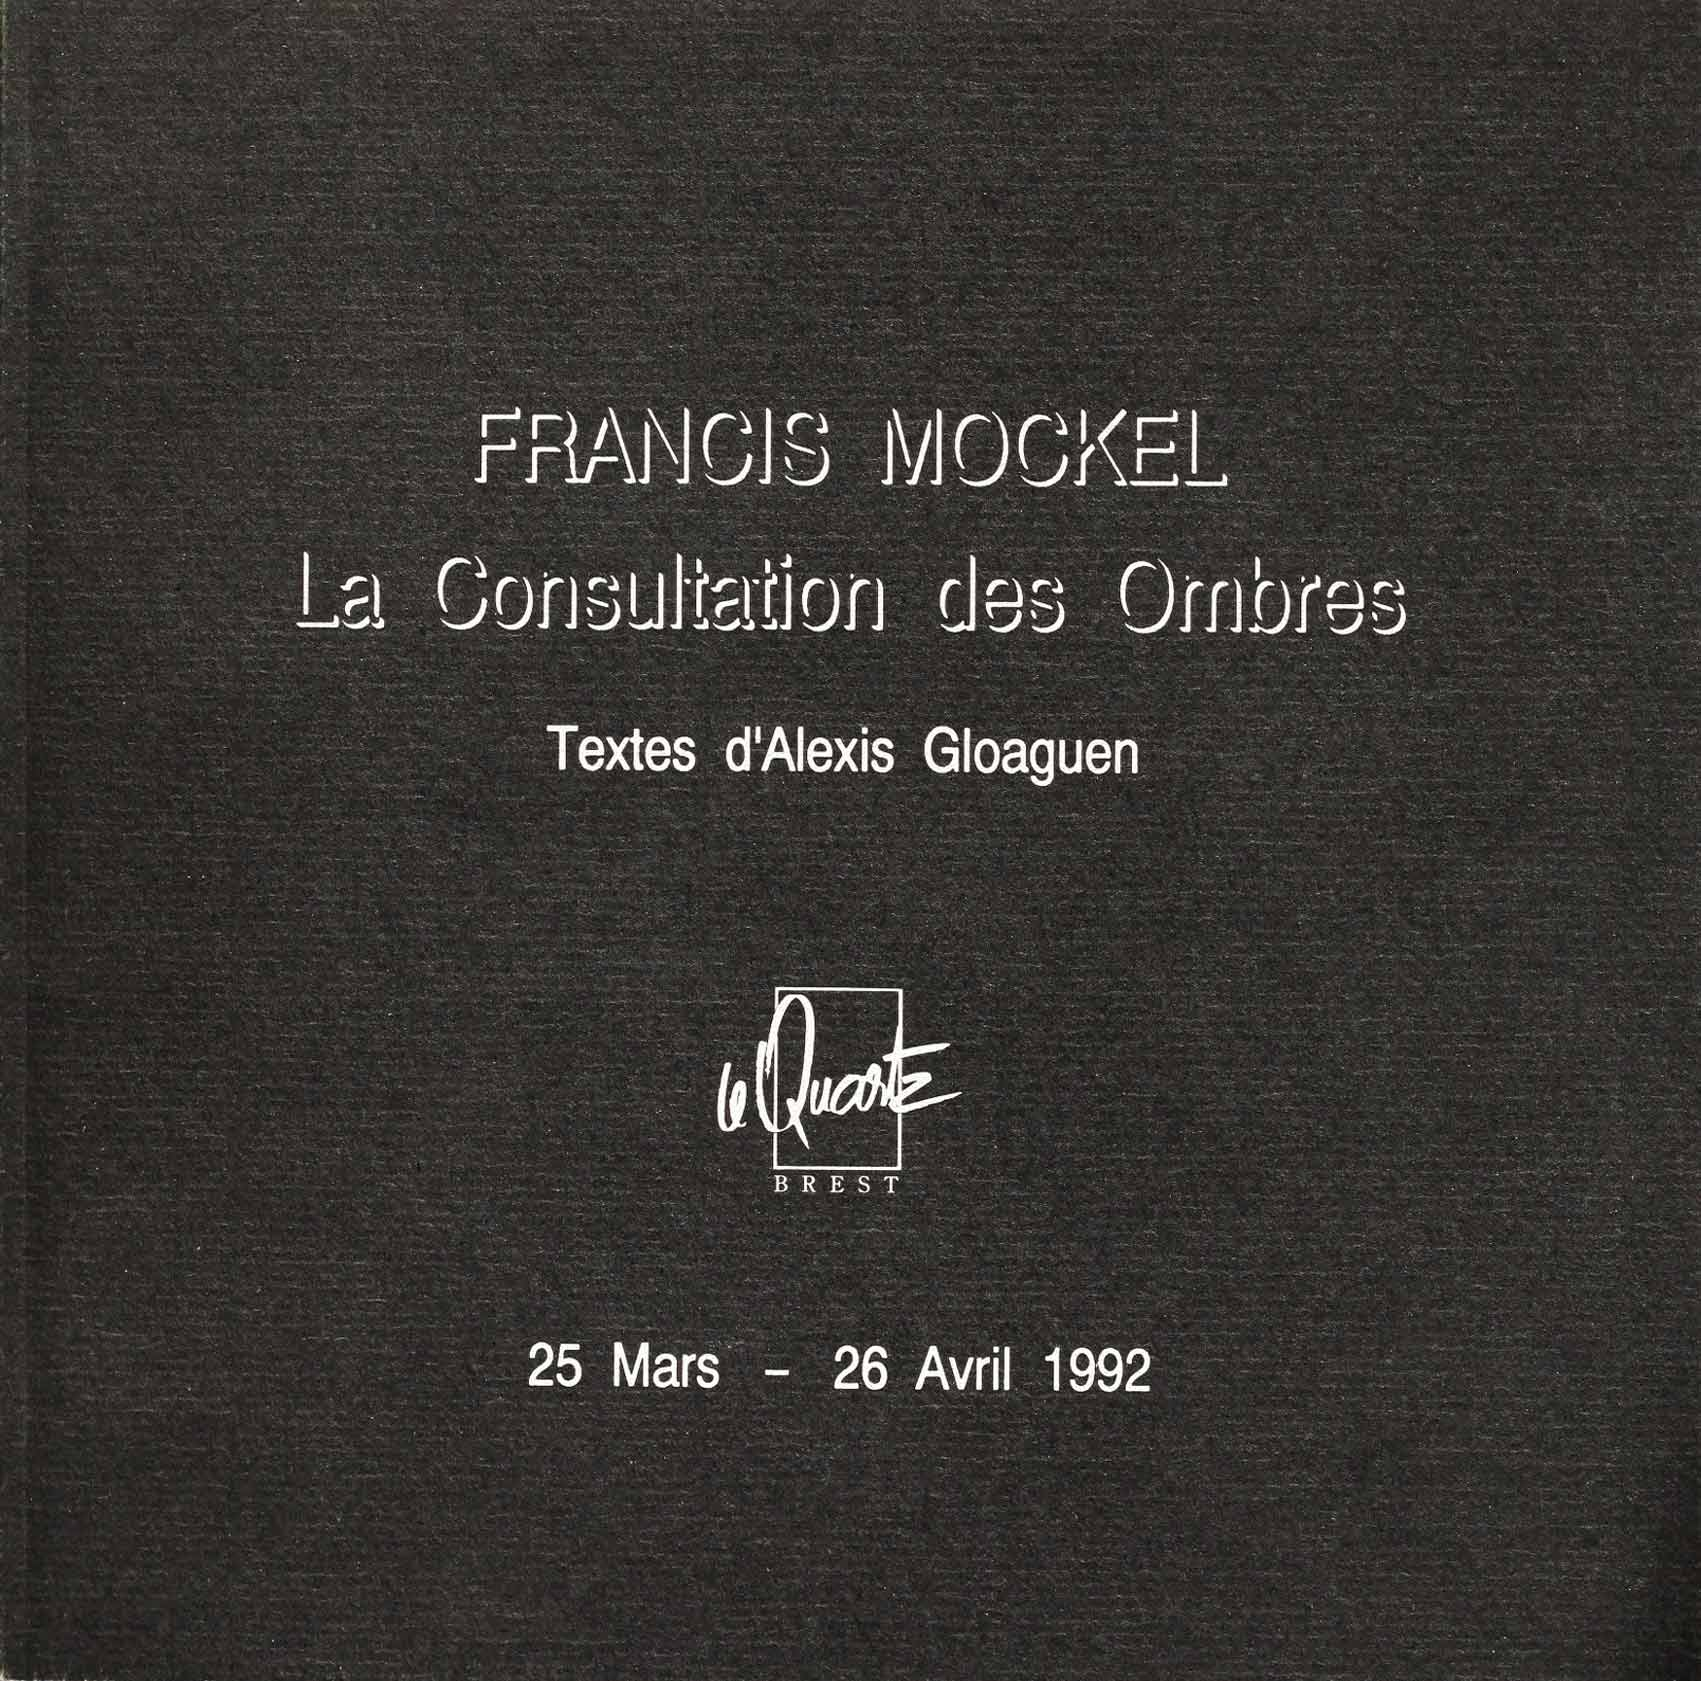 Francis Mockel, Catalogue 1992